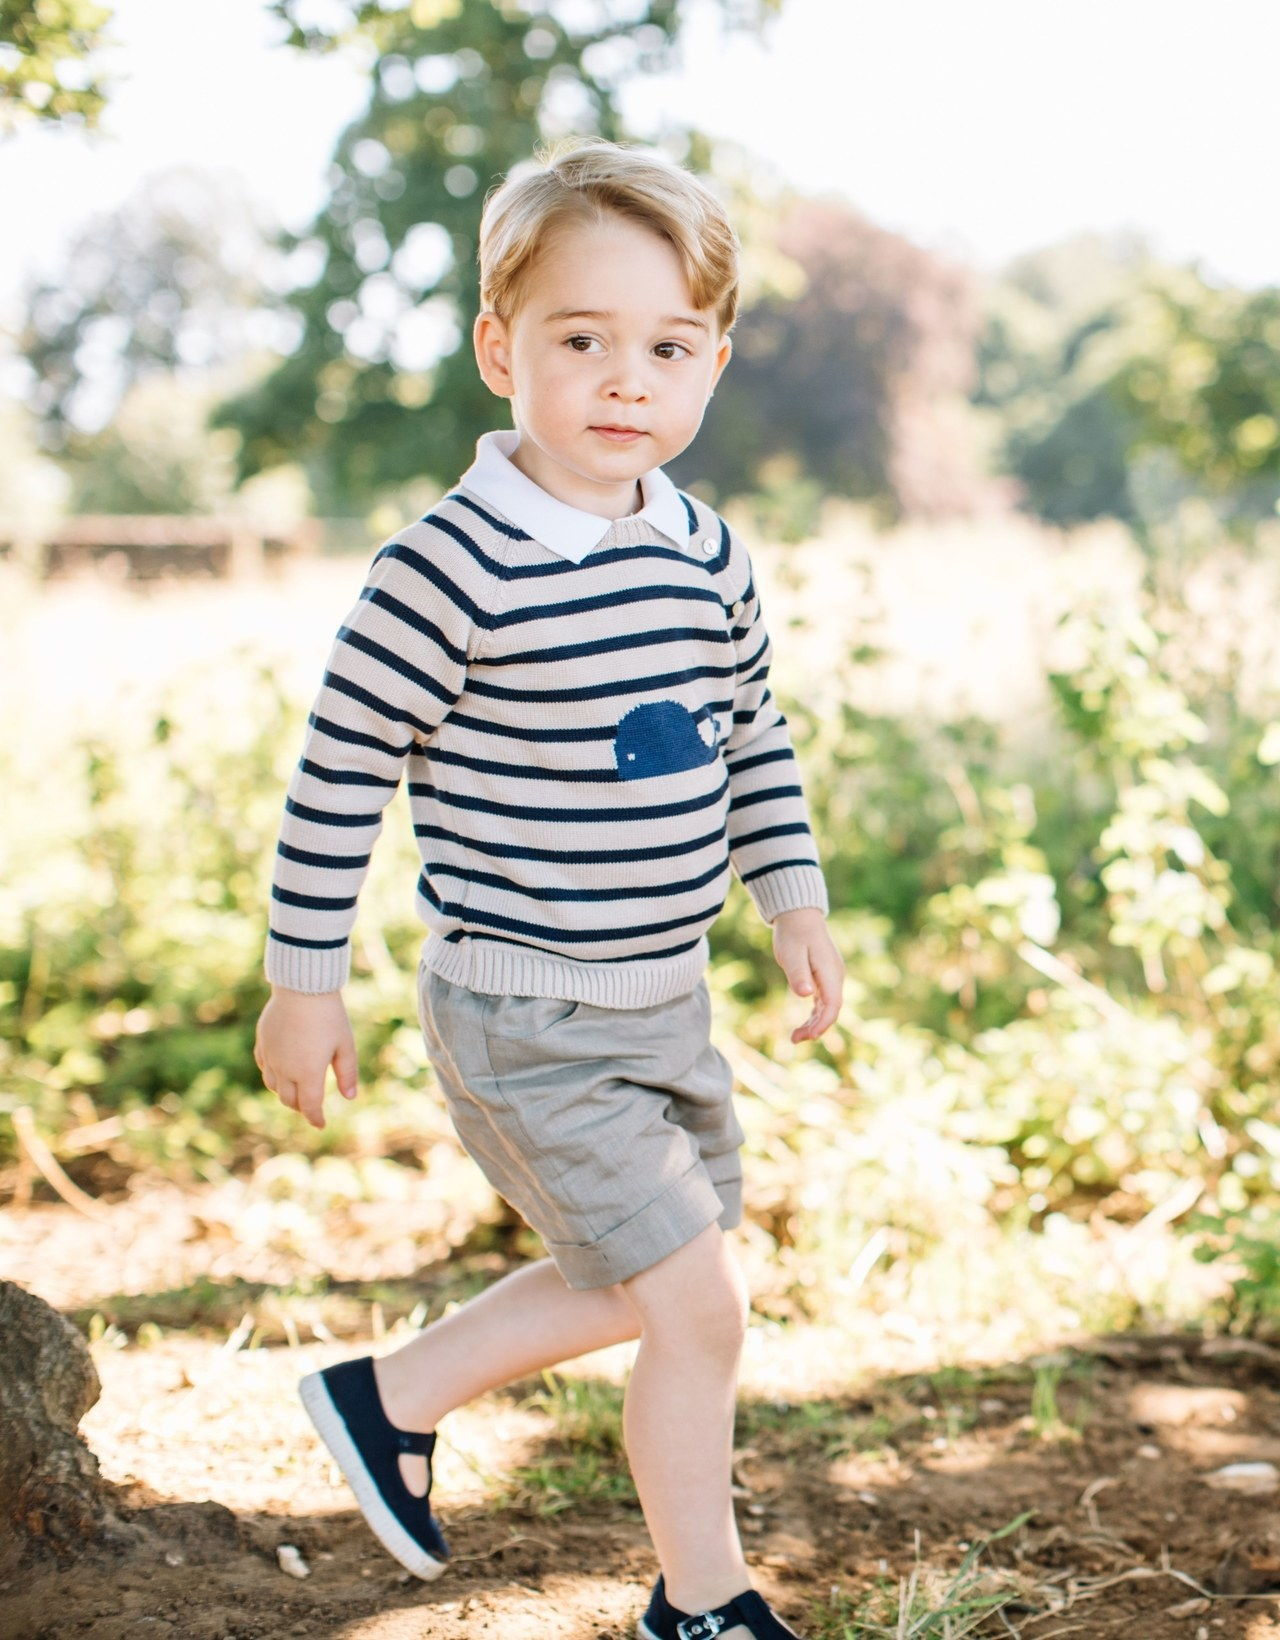 julkaisi by the Duke and Duchess of Cambridge of Prince George, who celebrates his third birthday today. The picture was taken at the family's Norfolk home in mid-July